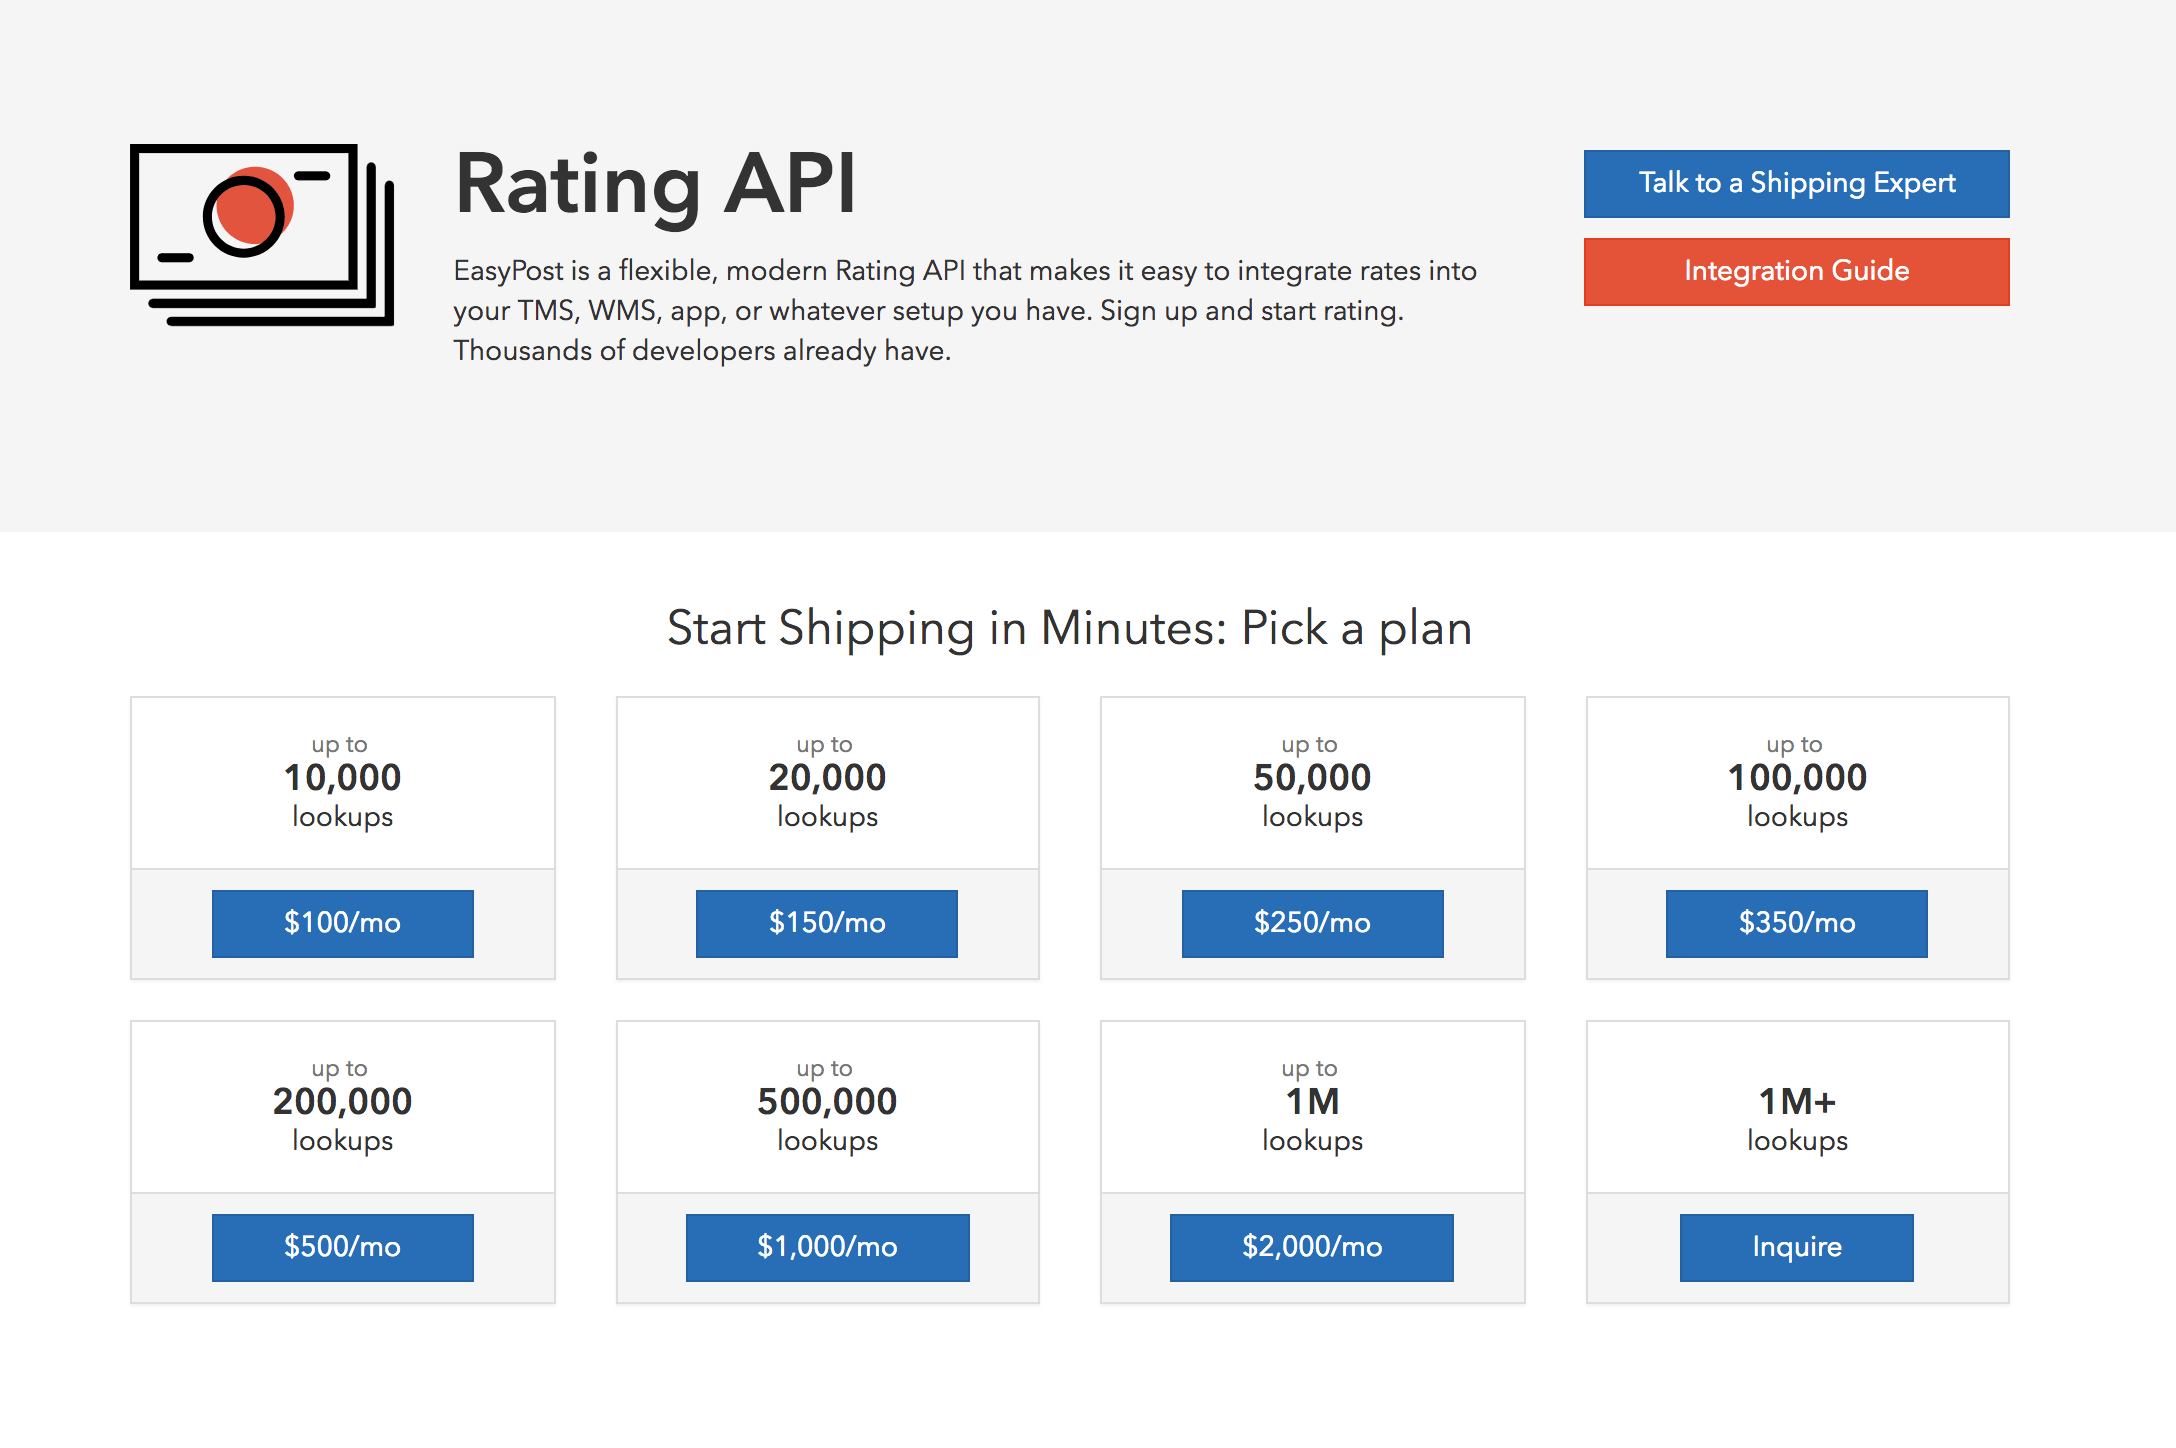 Rating API Subscription